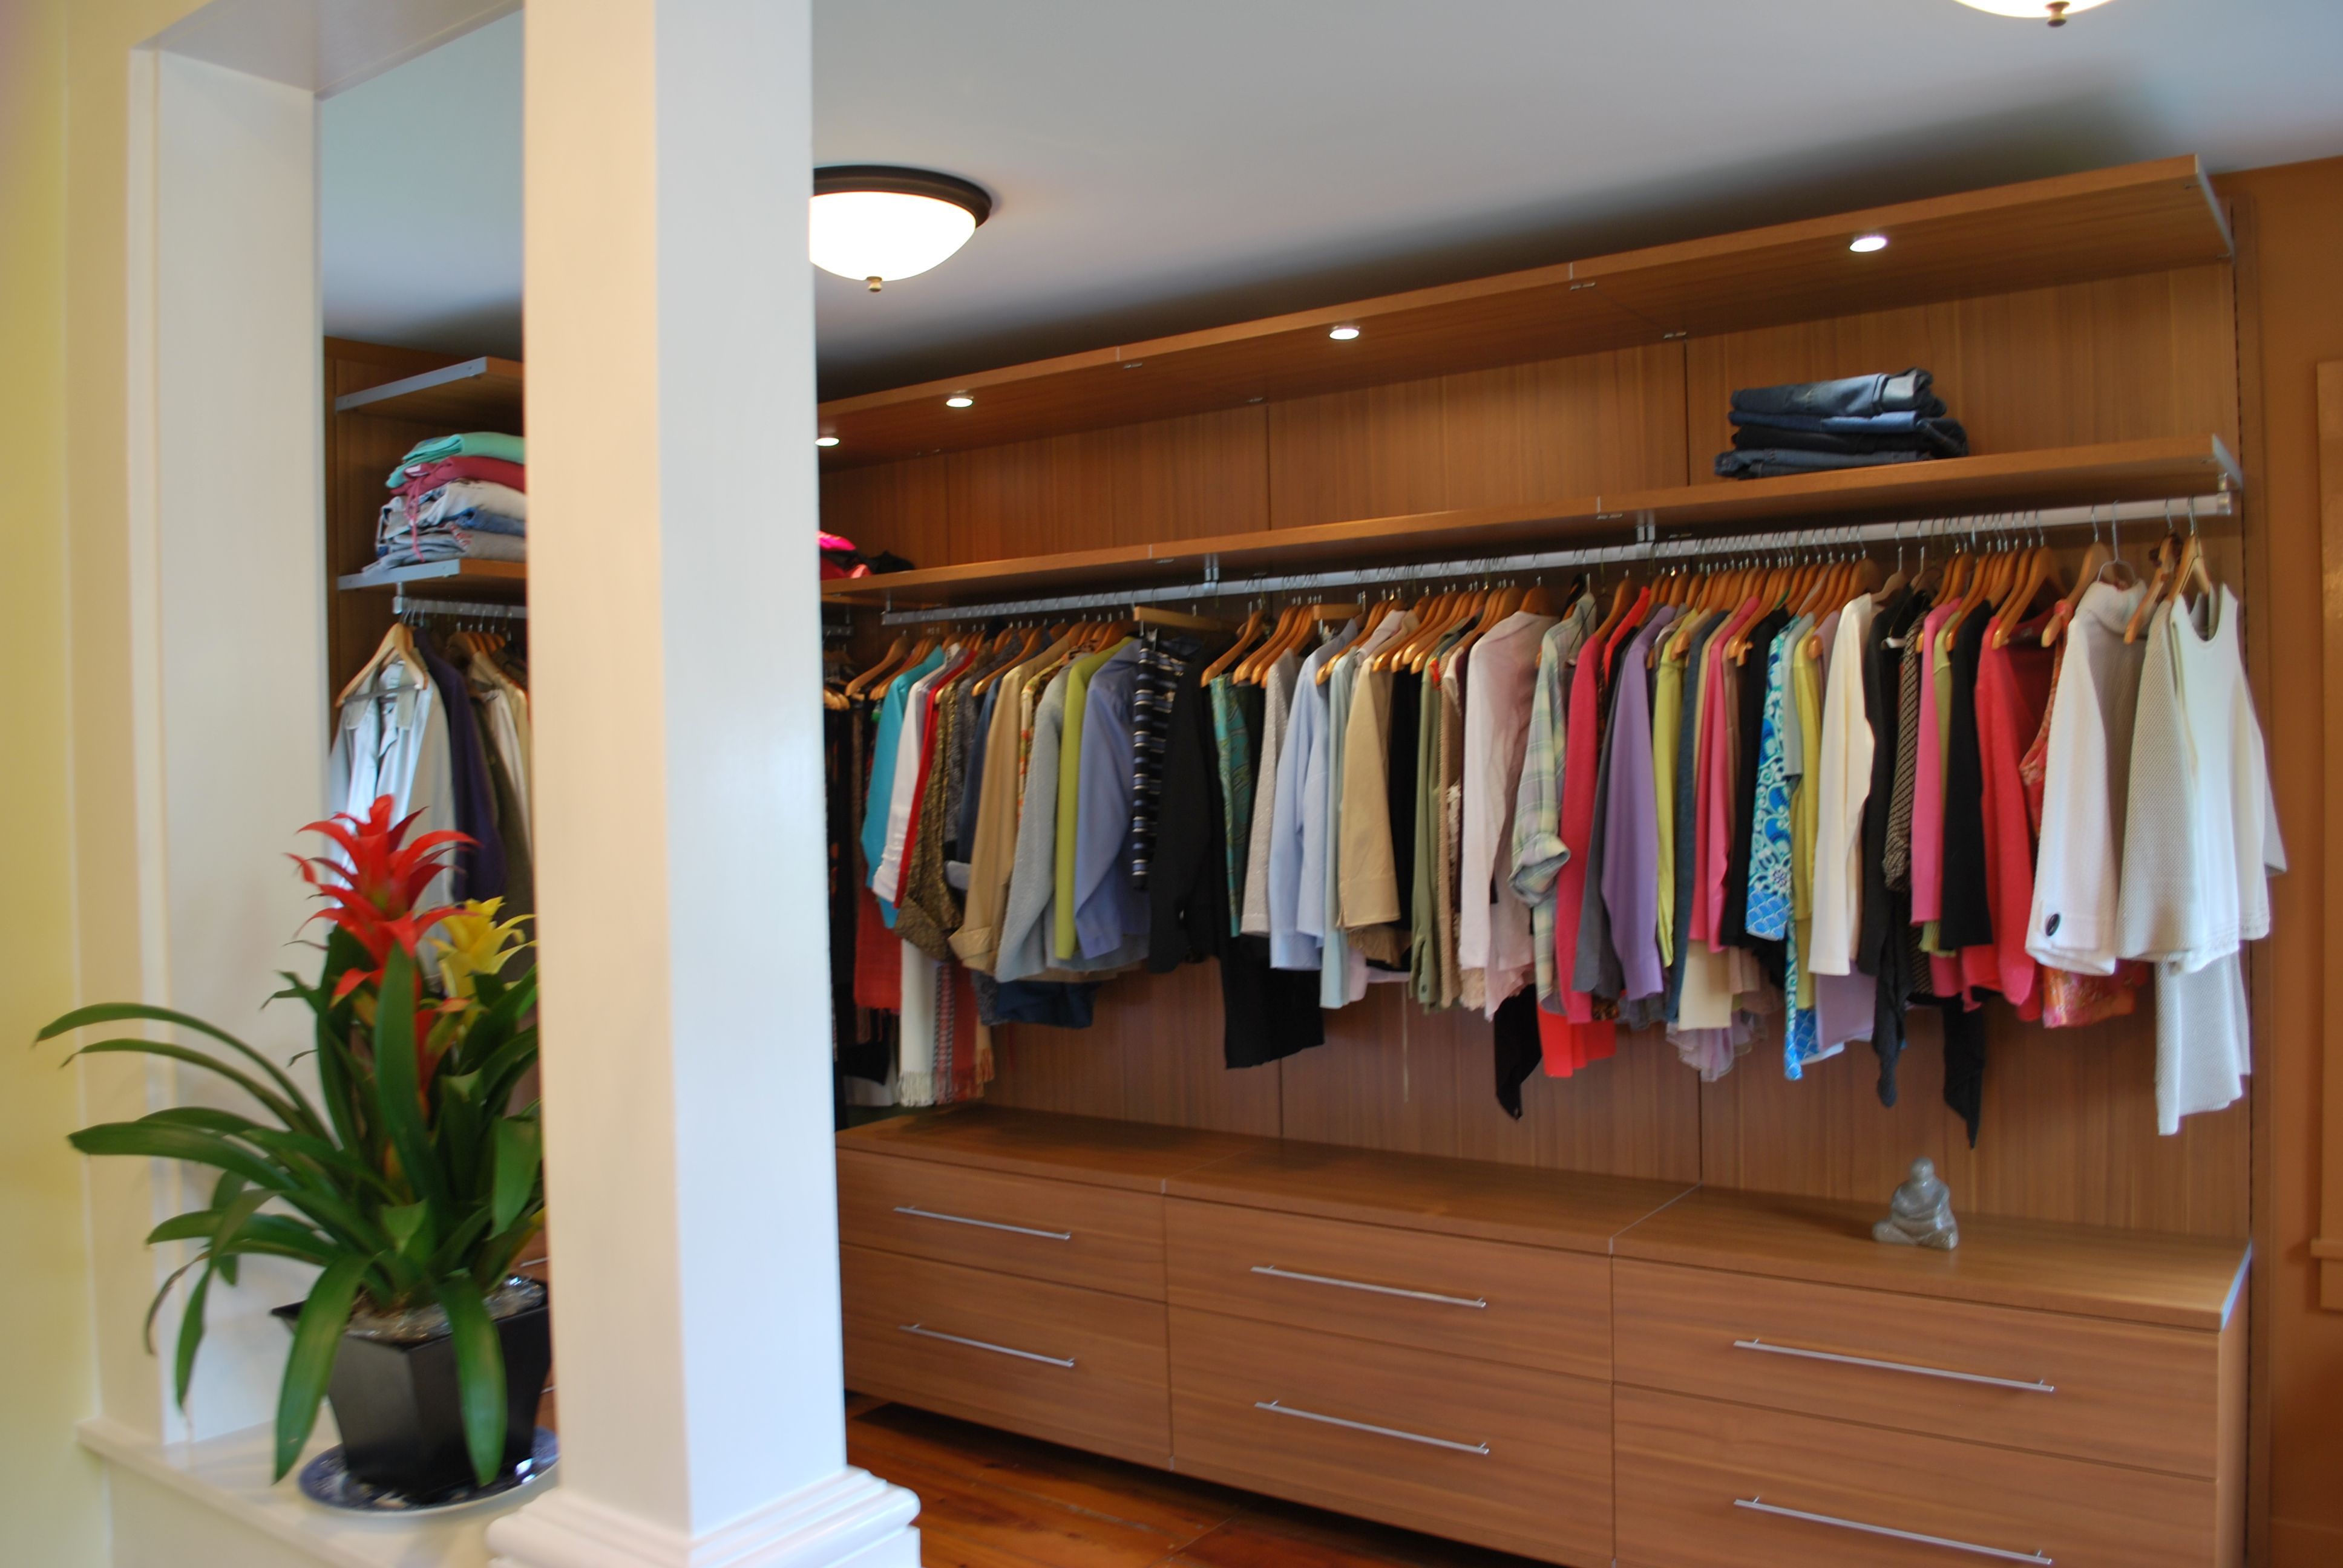 california closets | California Closets Virtuoso Walk-In Closet 1 ...